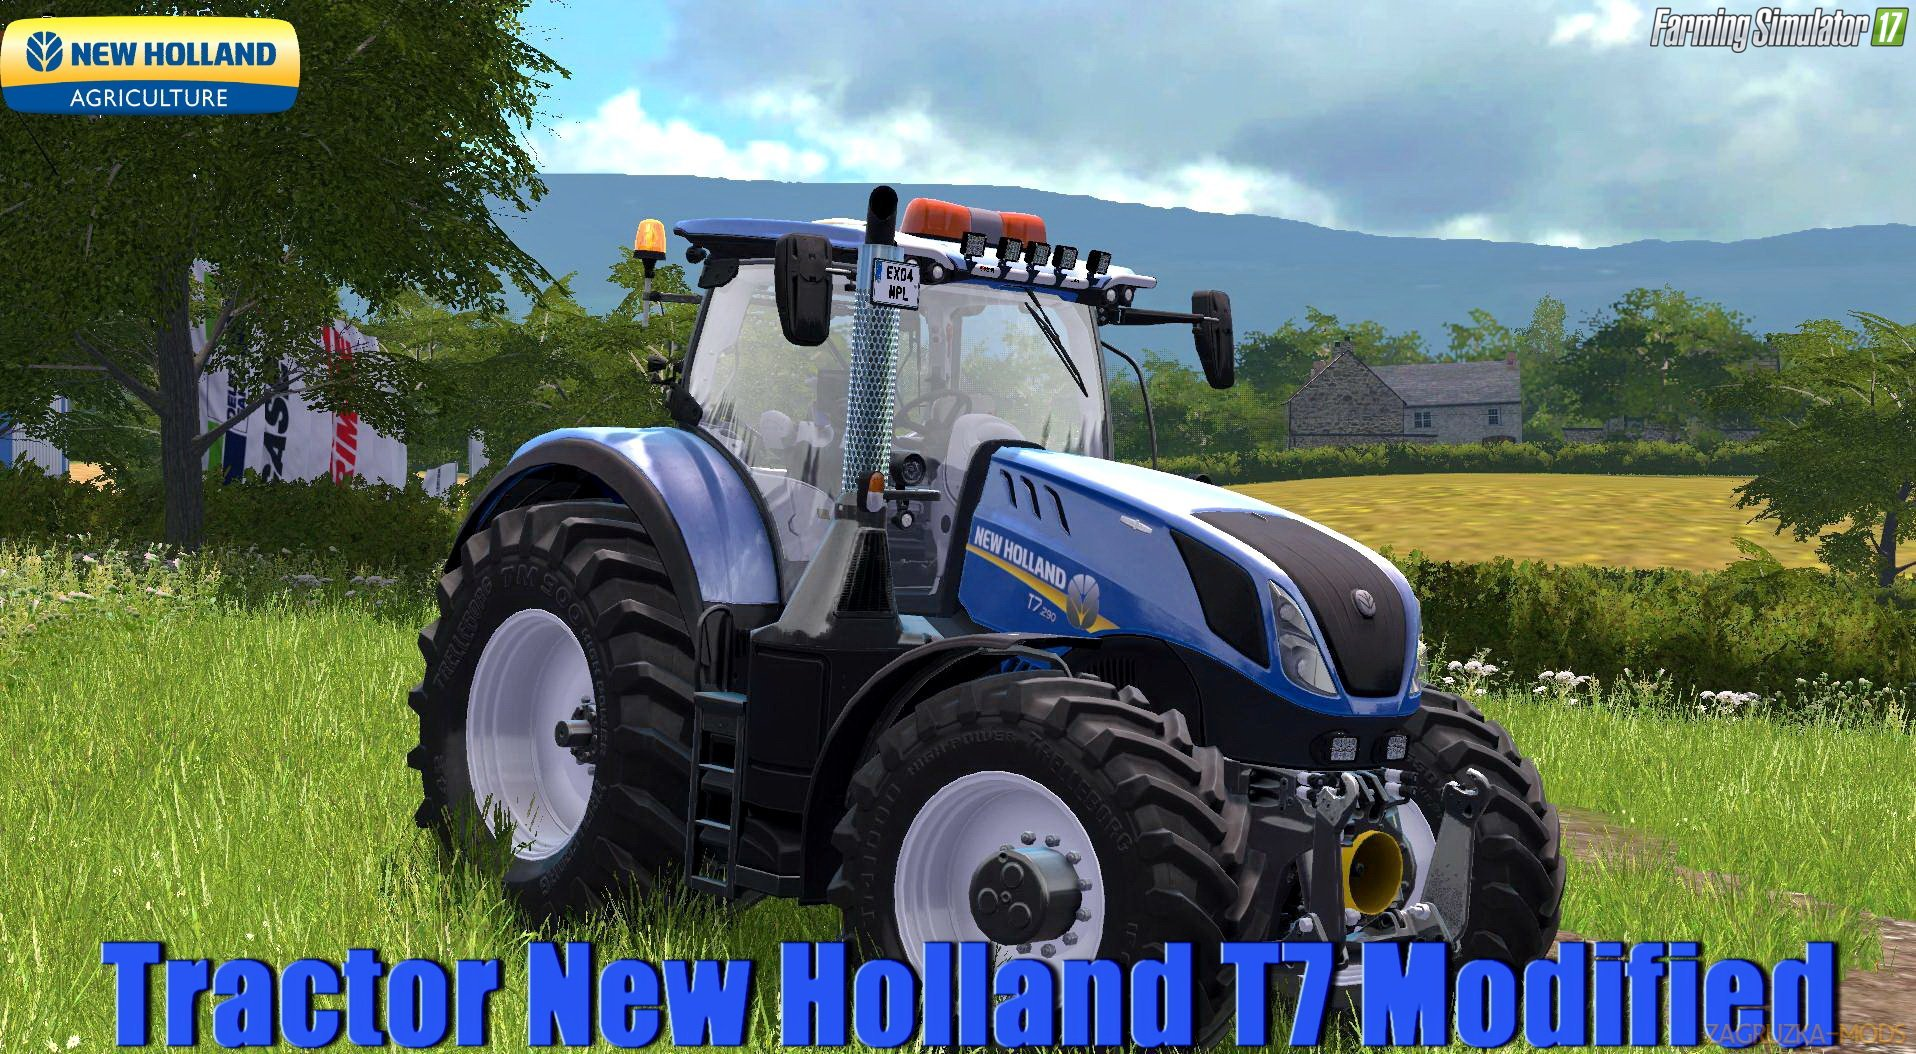 New Holland T7 Modified v1.0 for FS 17